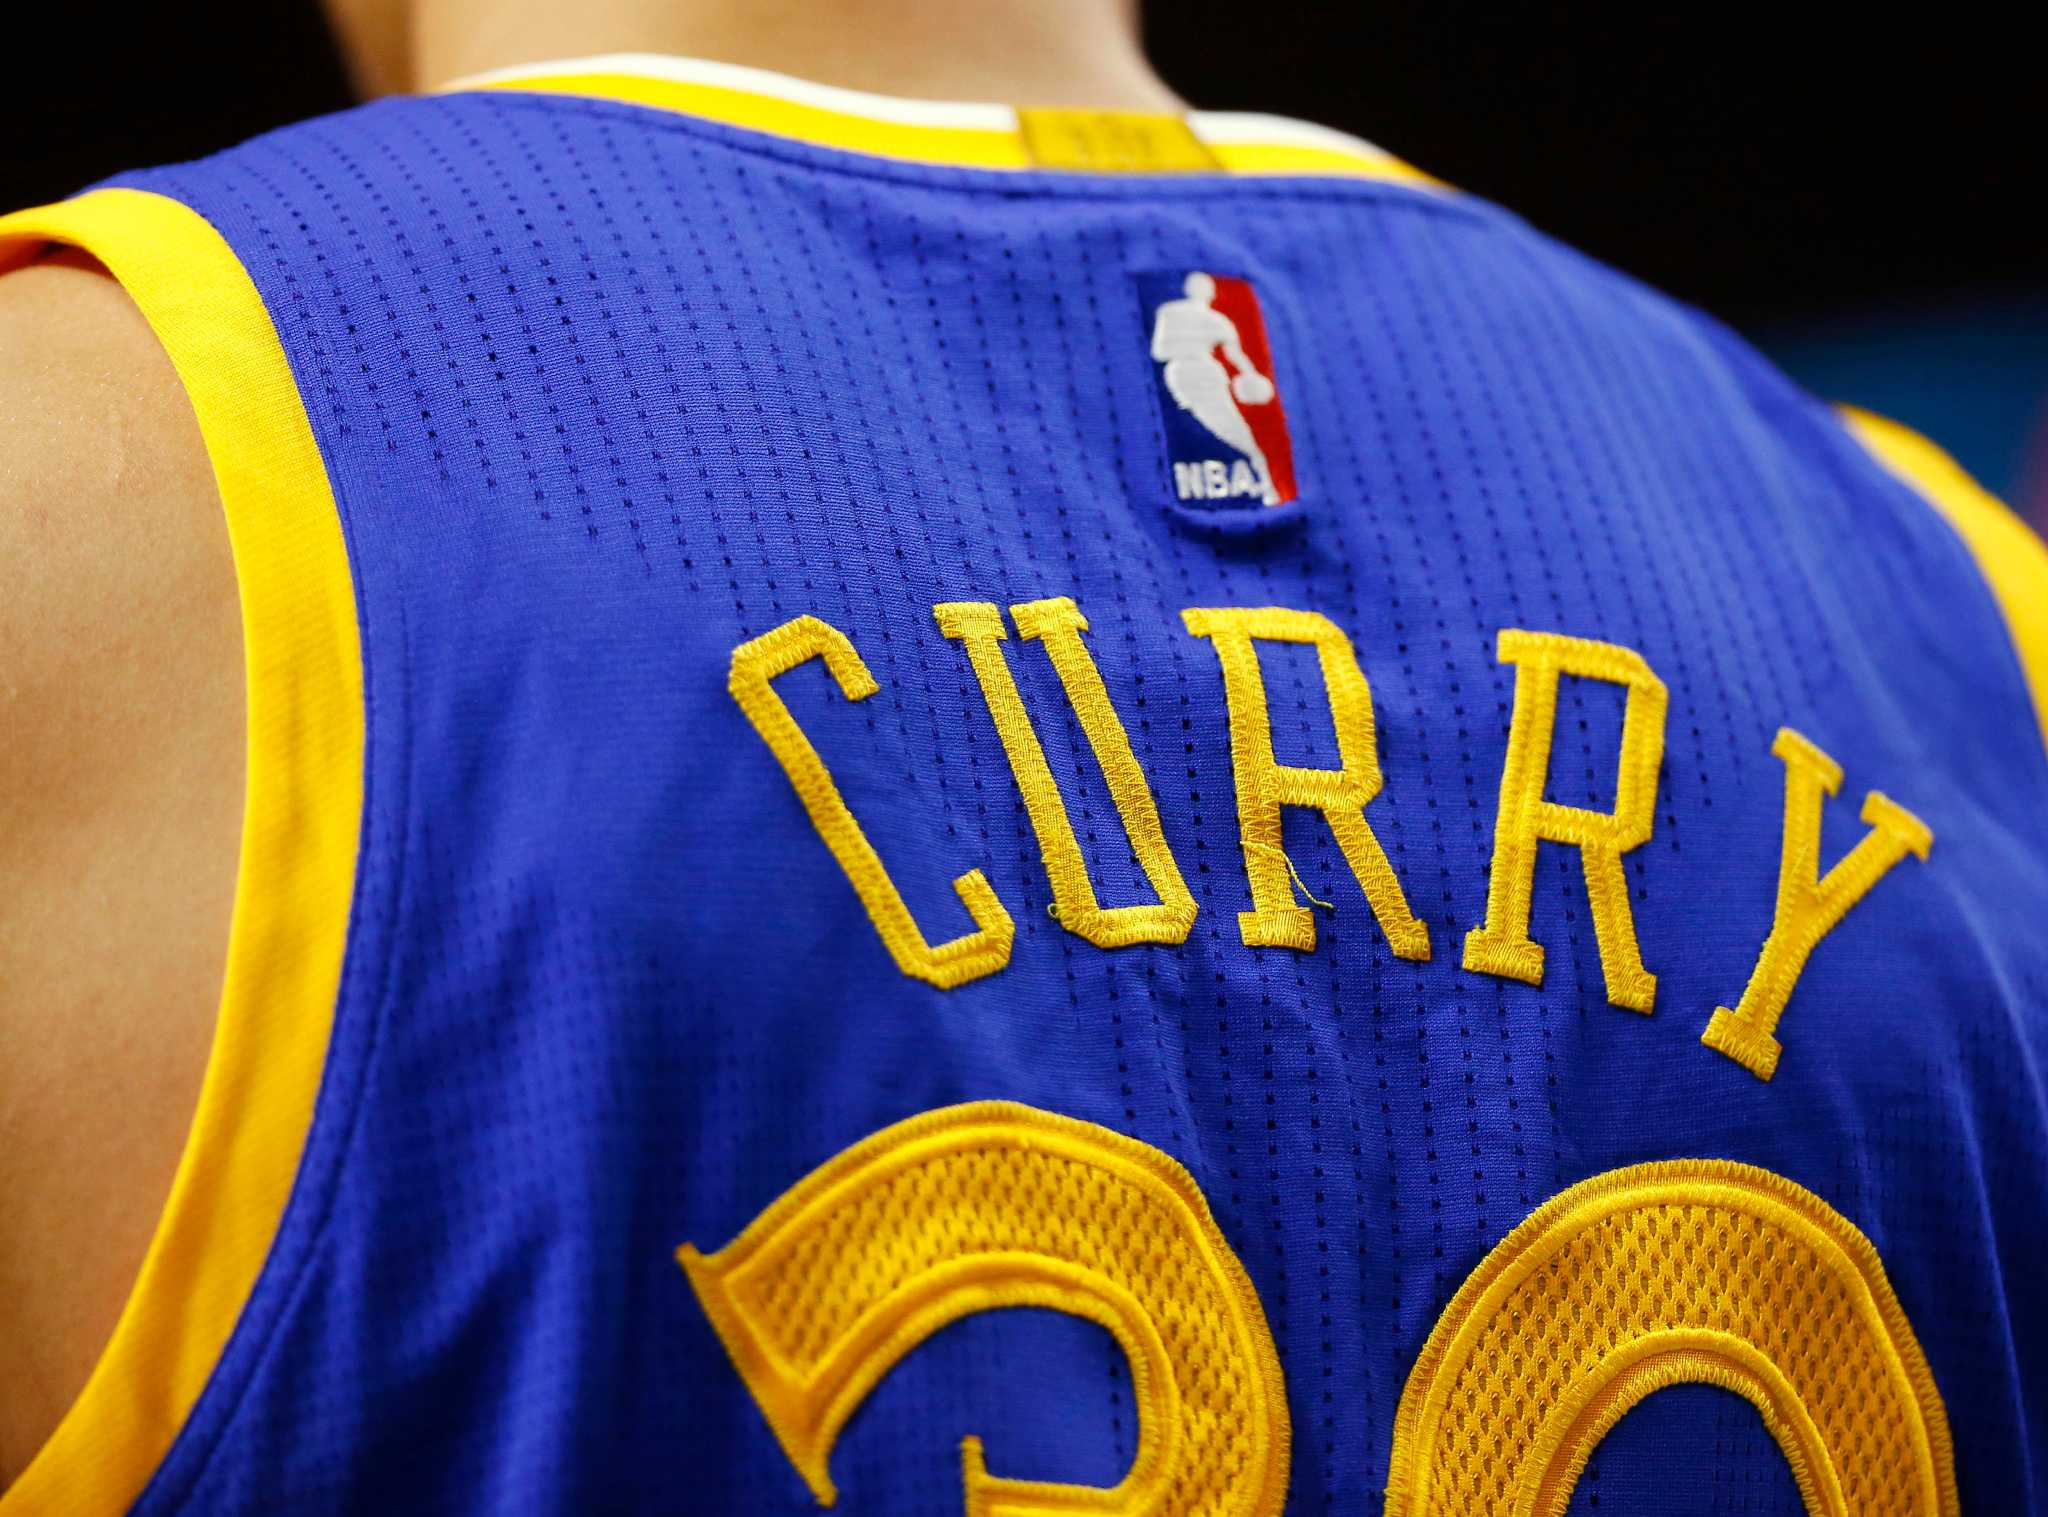 Steph Curry finally unseats LeBron James as most popular jersey in NBA -  SFGate 8570b8a25